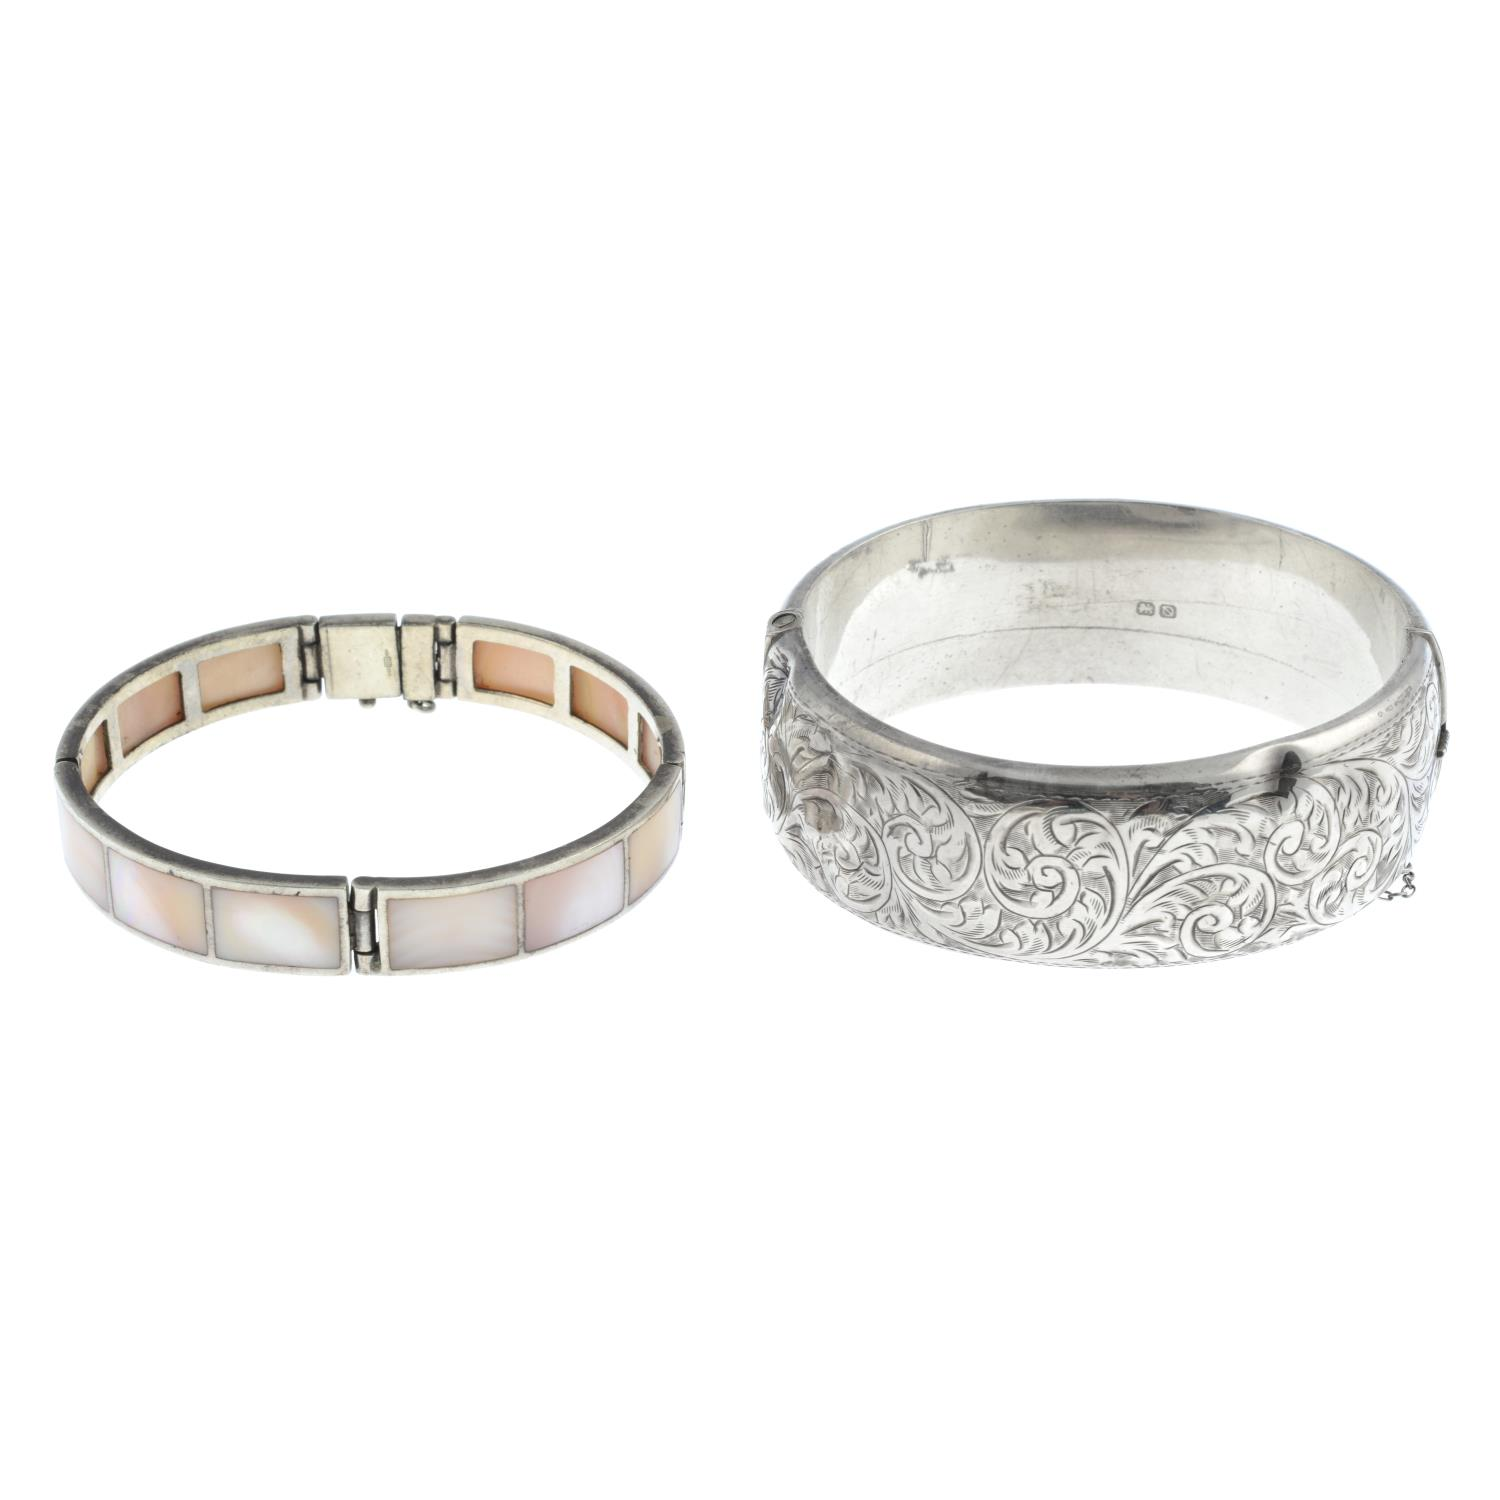 A selection of bangles, to include a silver pink mother-of-pearl bangle.